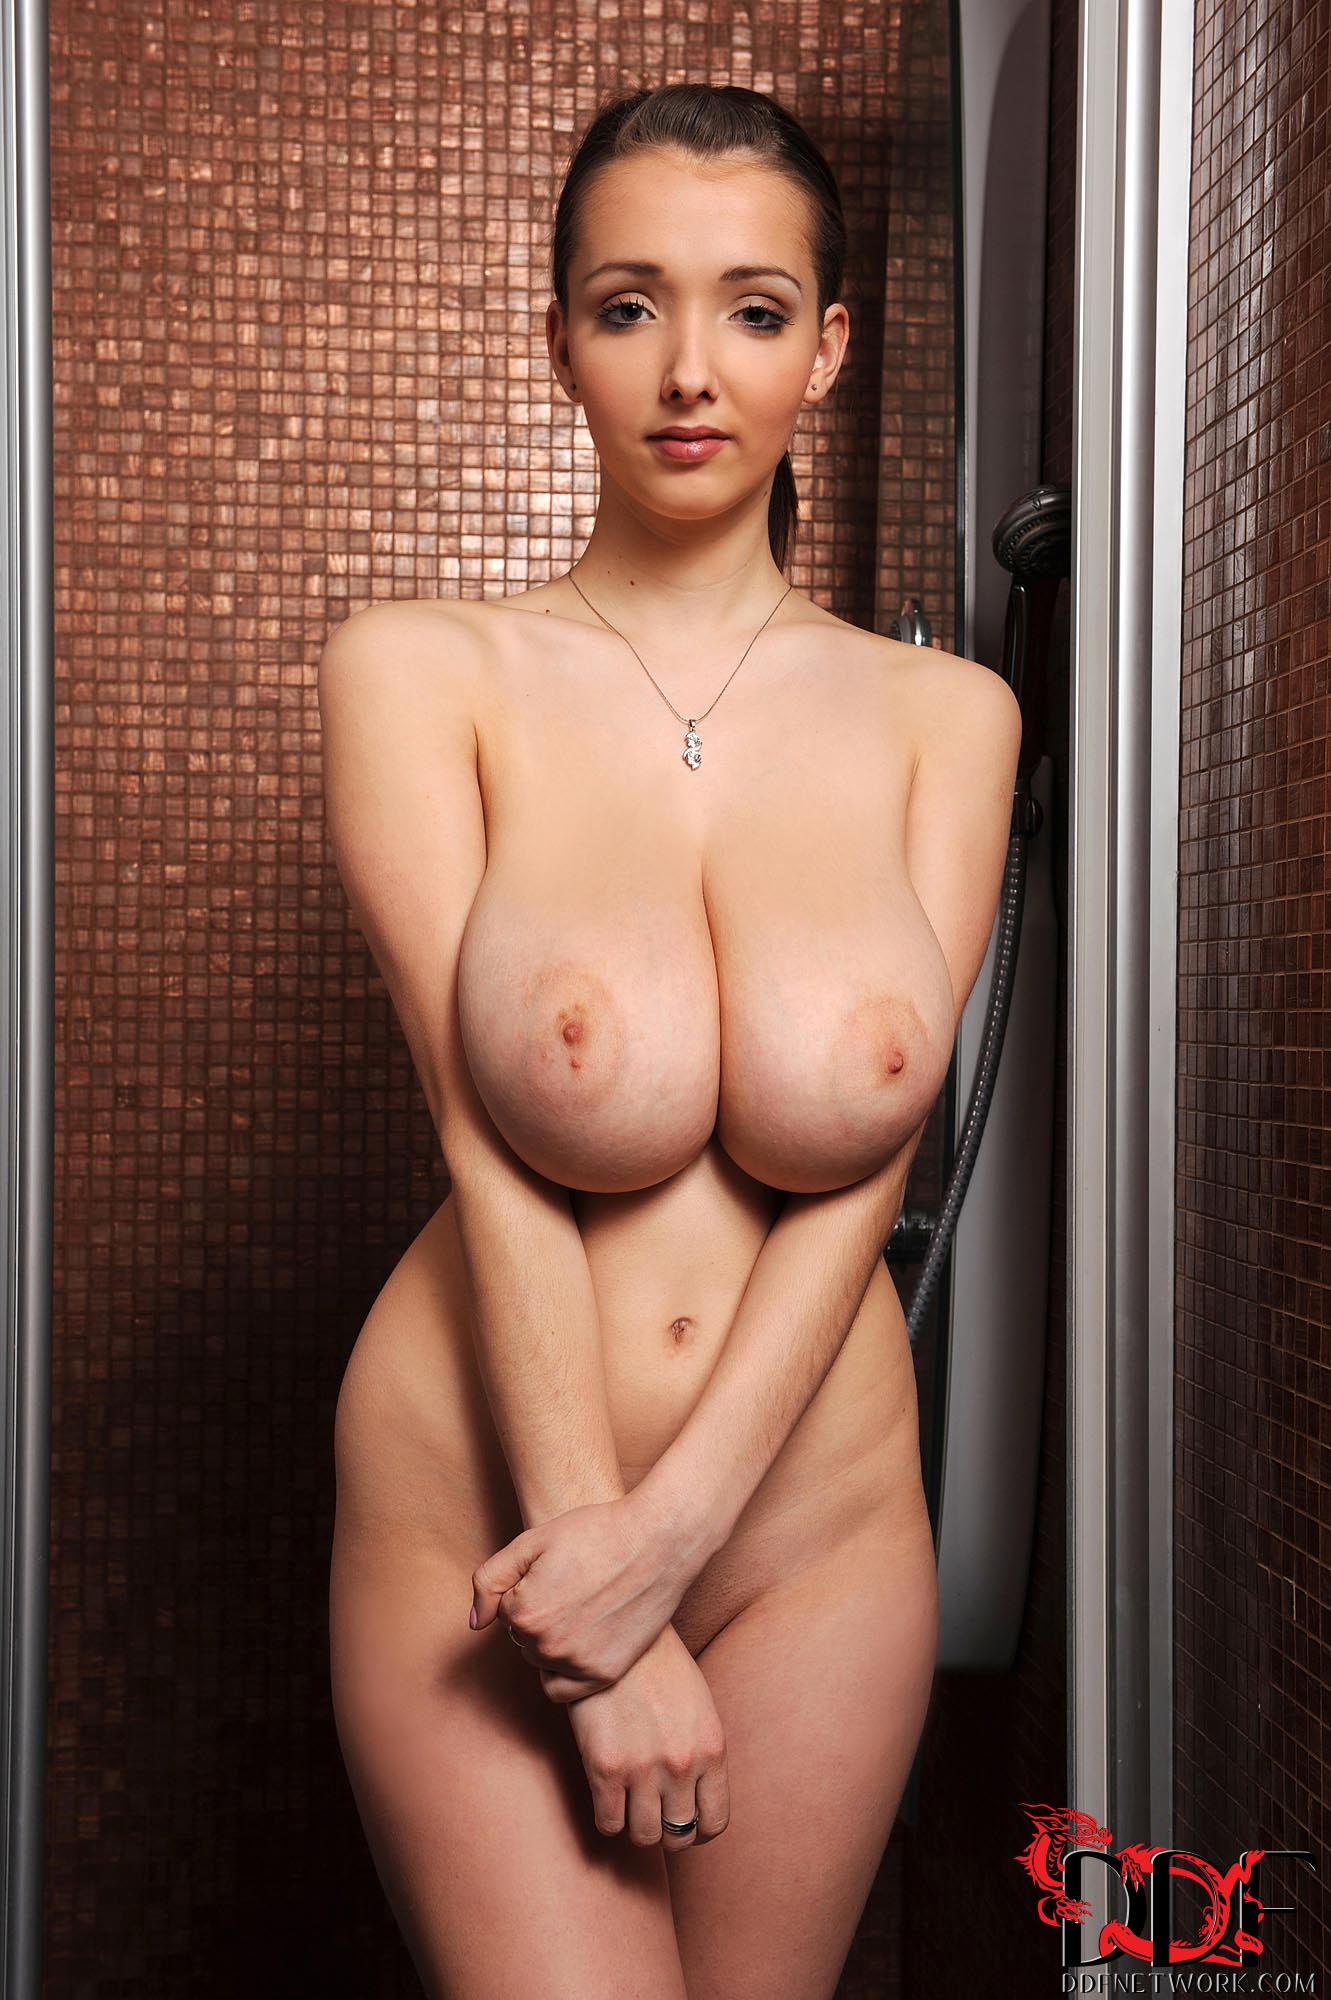 huge-boobs-tits-naked-mix-vol5-04